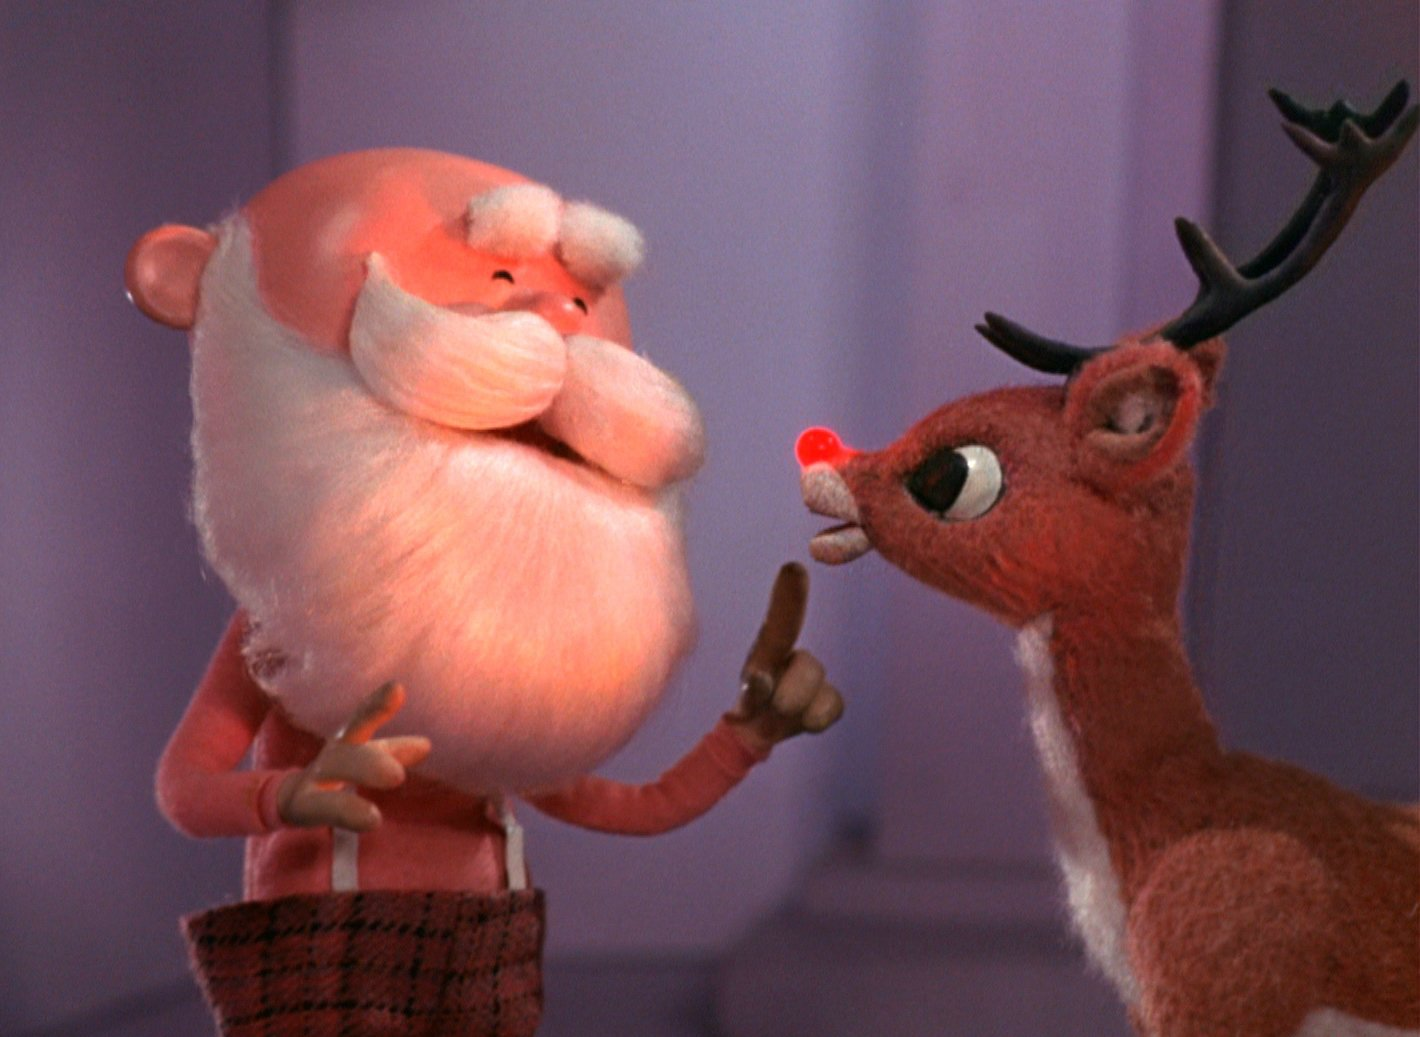 In Focus | Rudolph the Red-Nosed Reindeer - photo#13